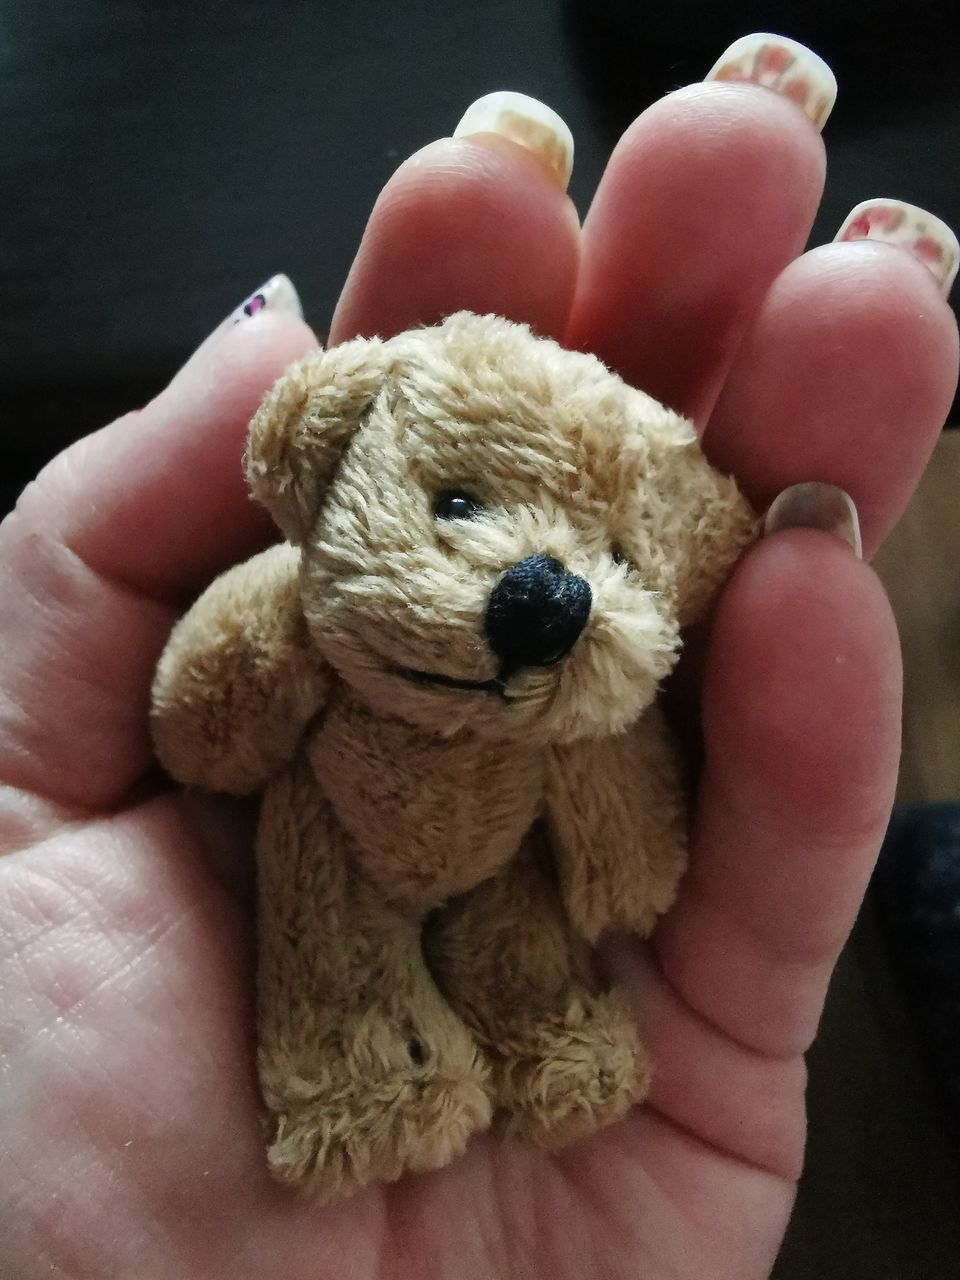 CLOSE-UP OF PERSON HAND HOLDING TOY